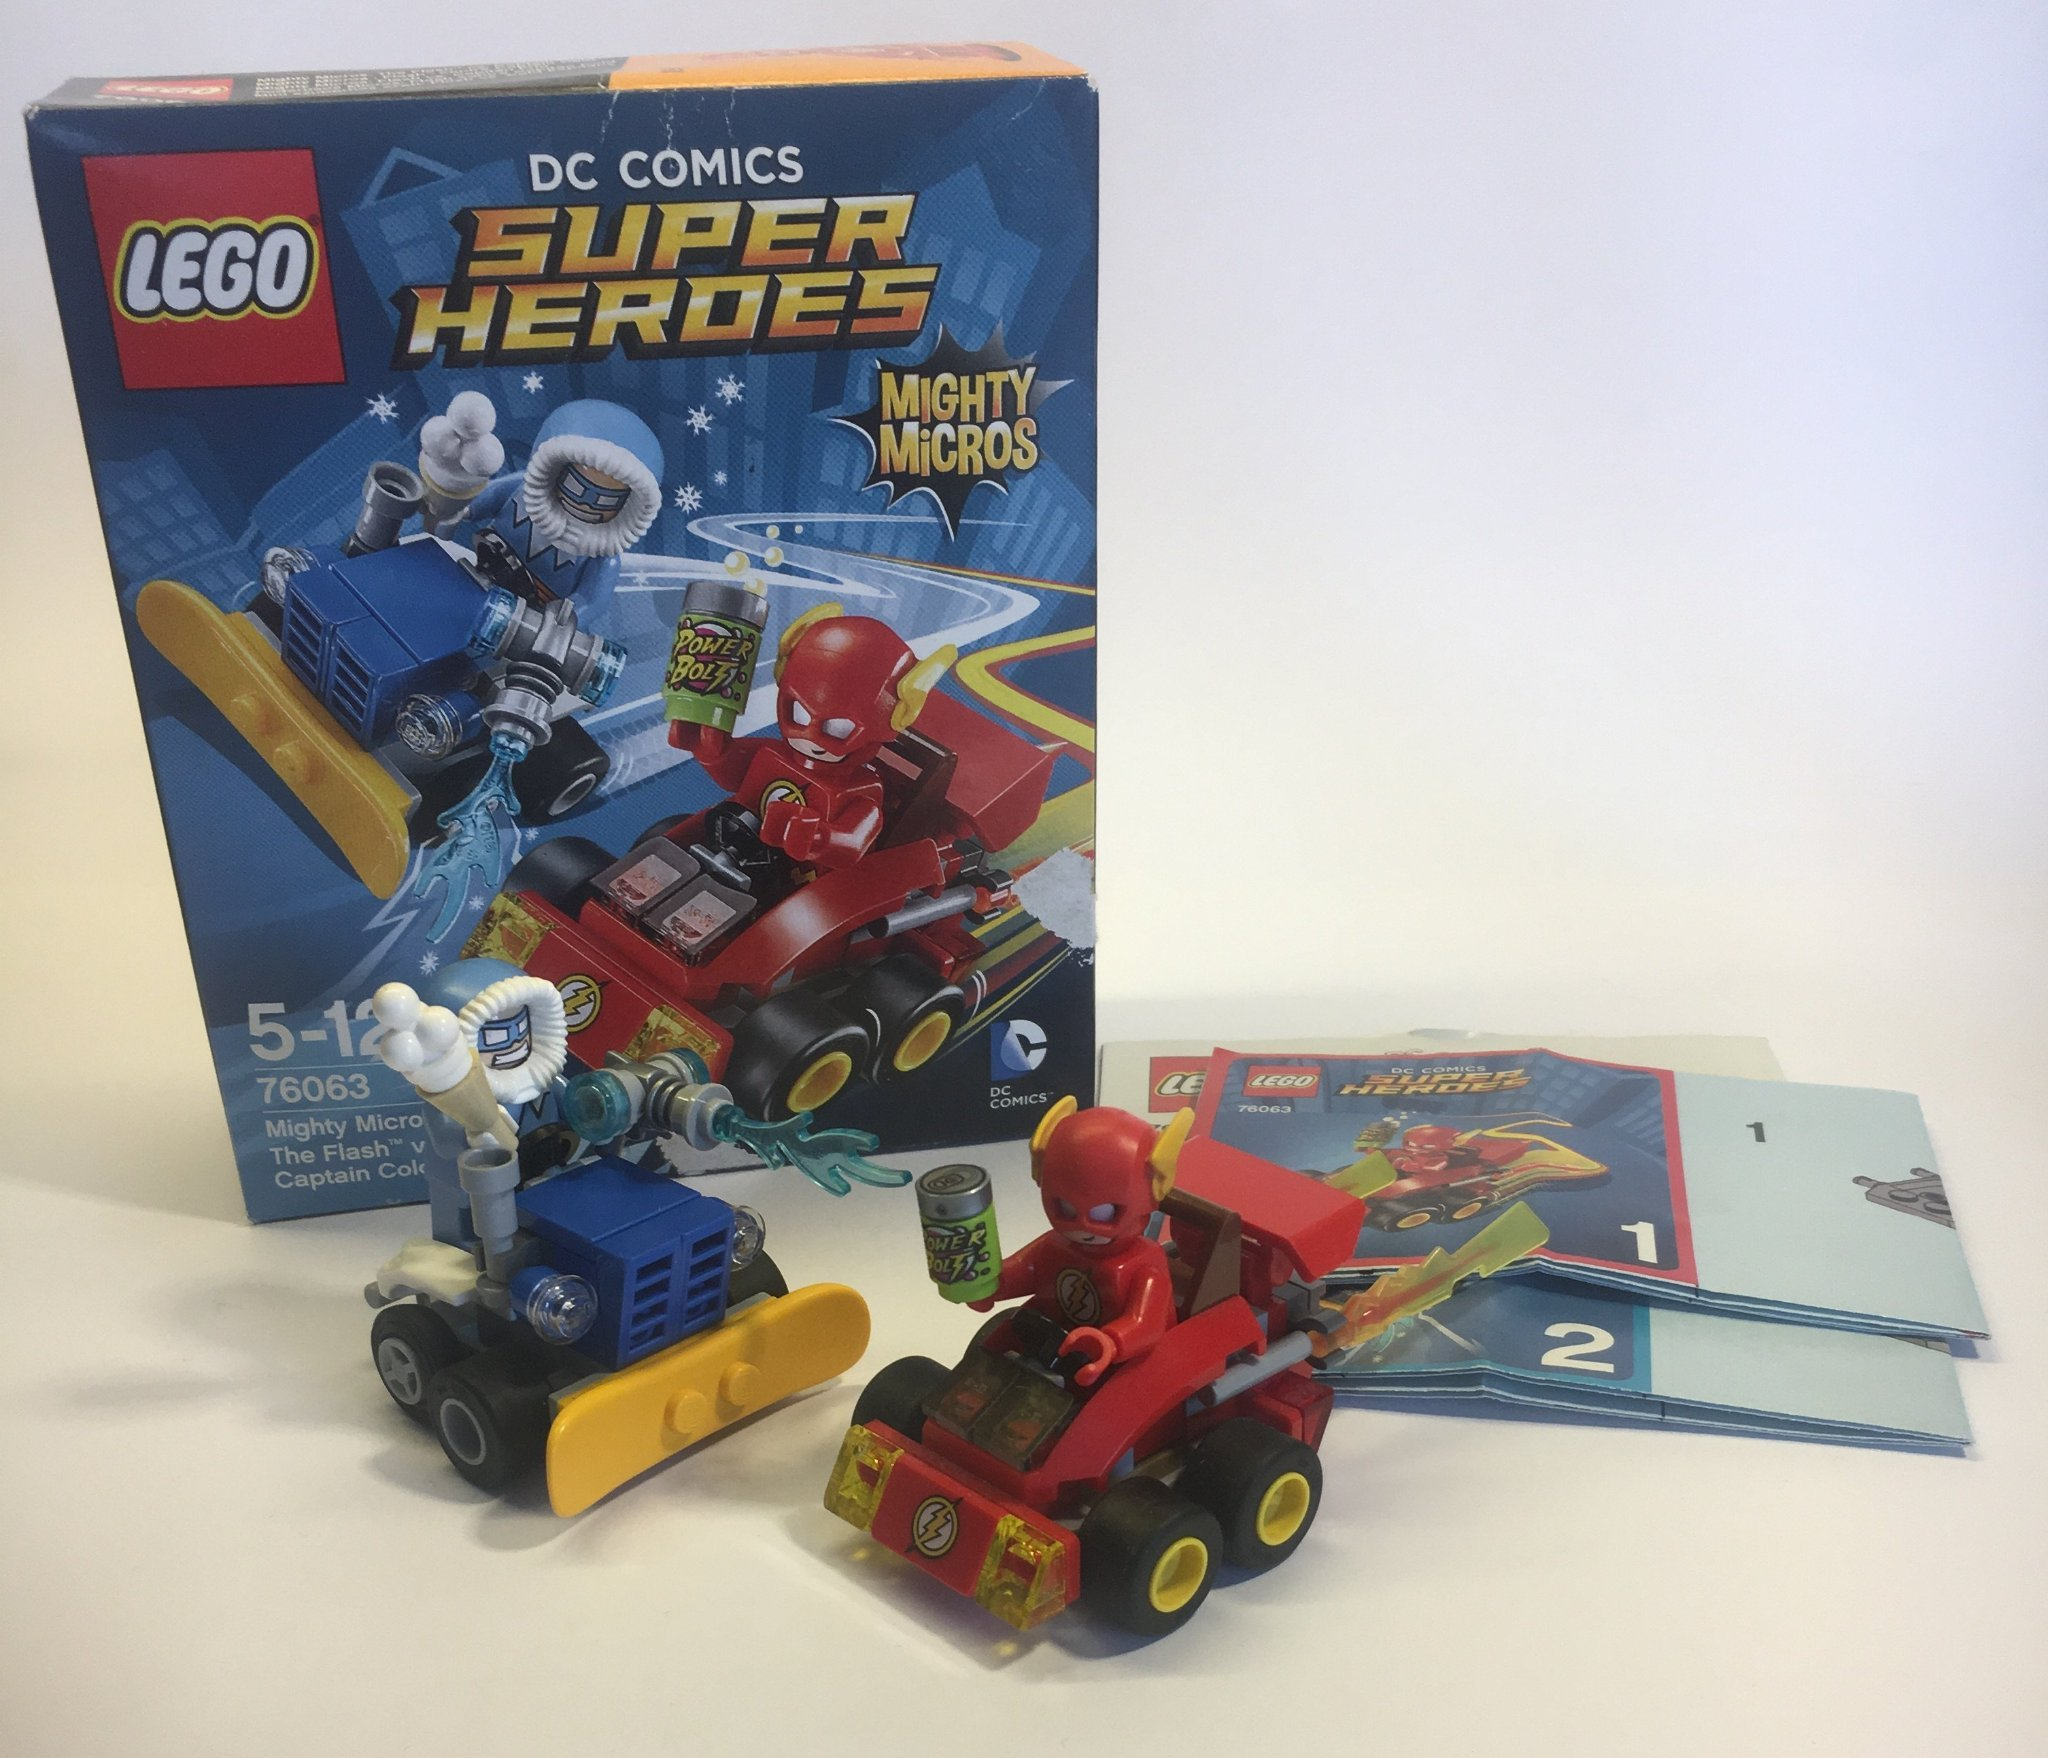 Lego Super Heroes Mighty Micros The Flash Vs Captain Cold 76063 Building Sets